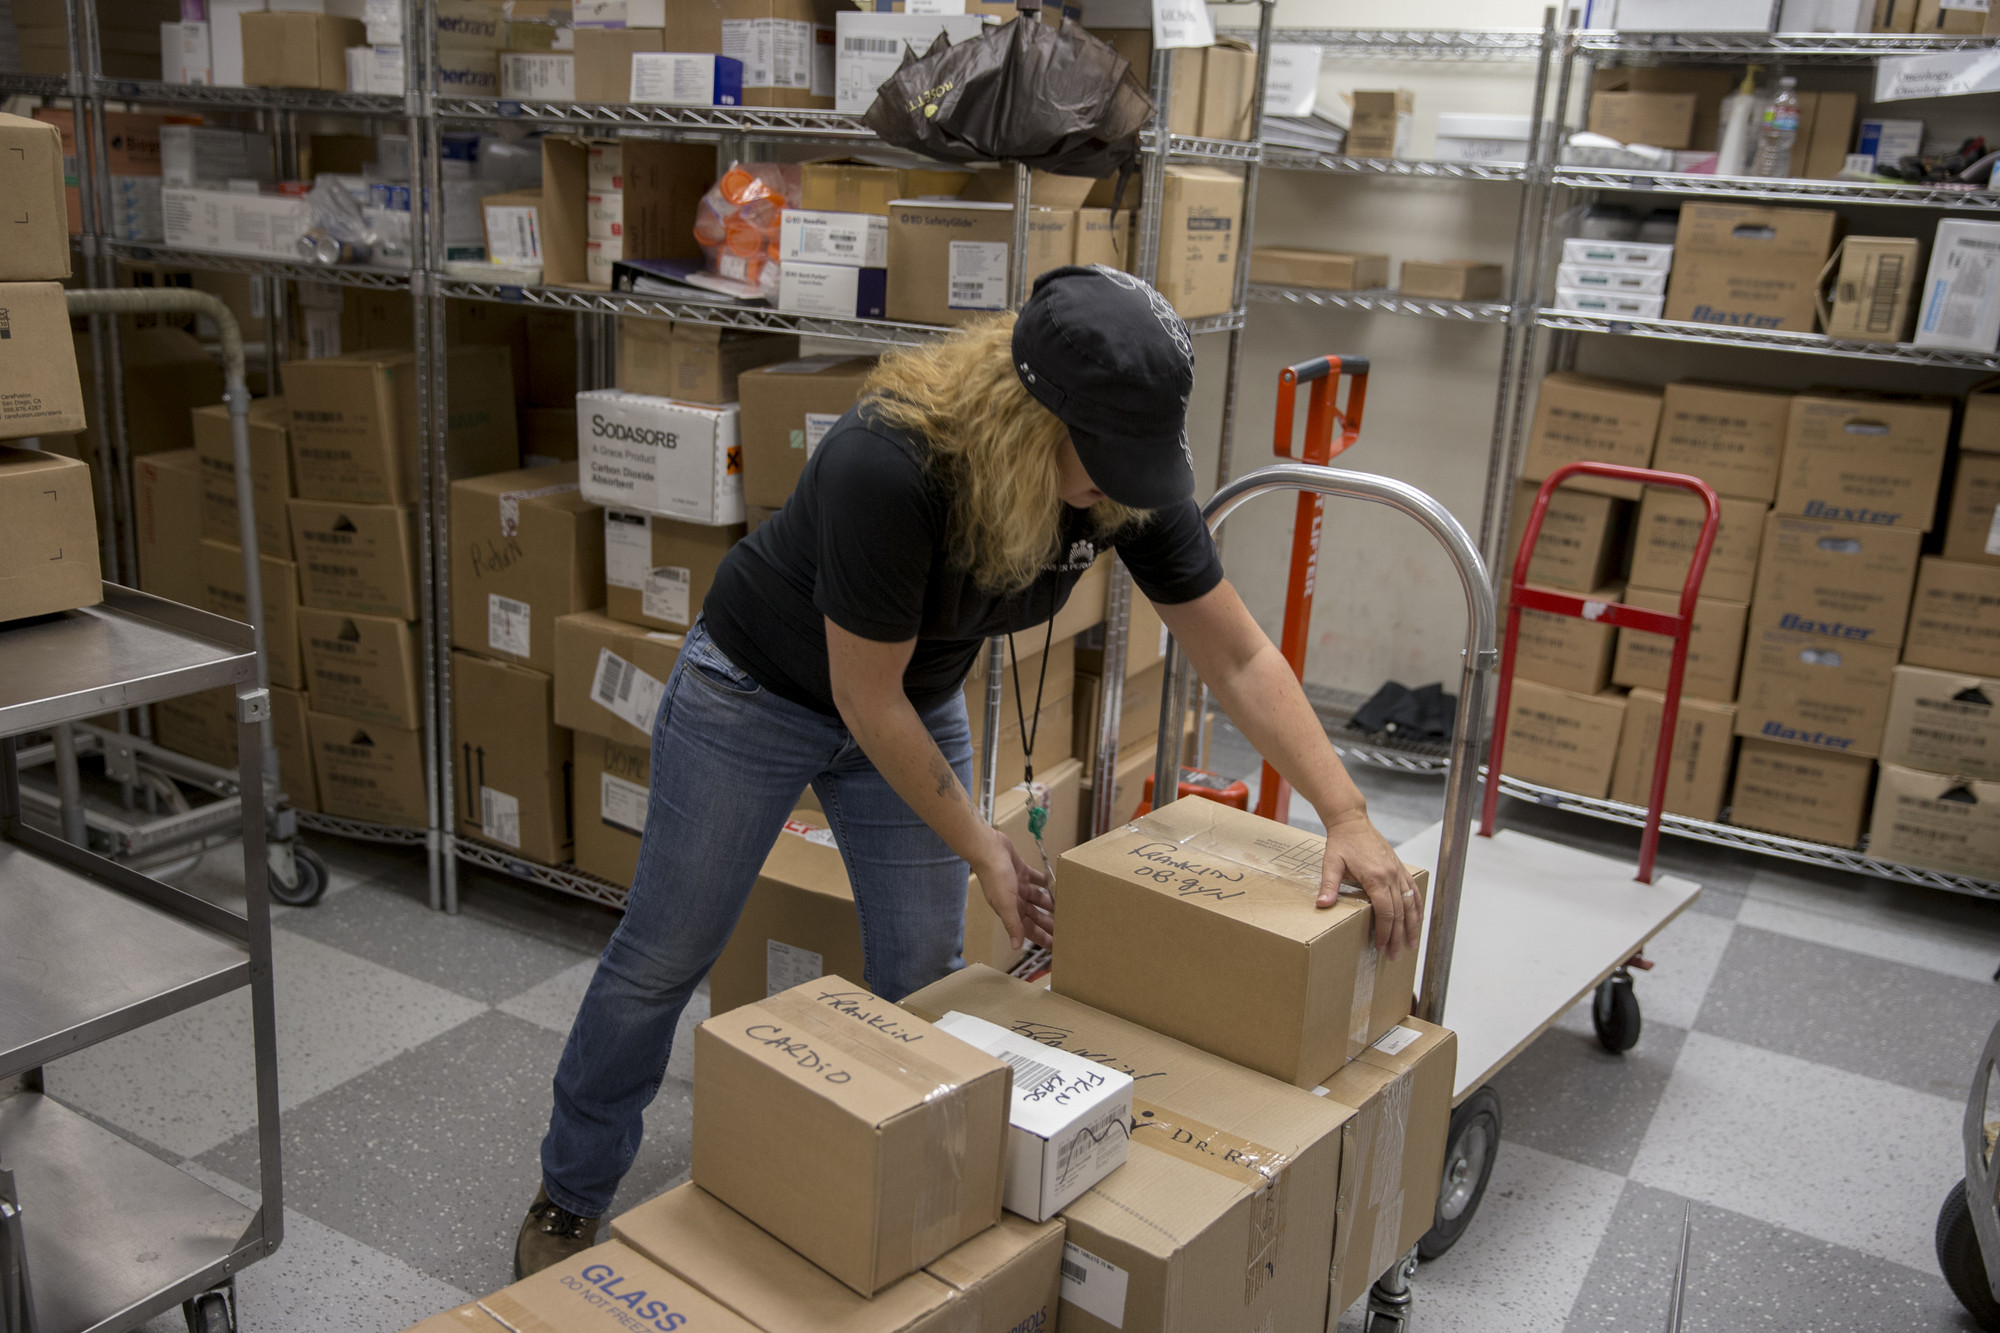 A mail services worker unloads packages